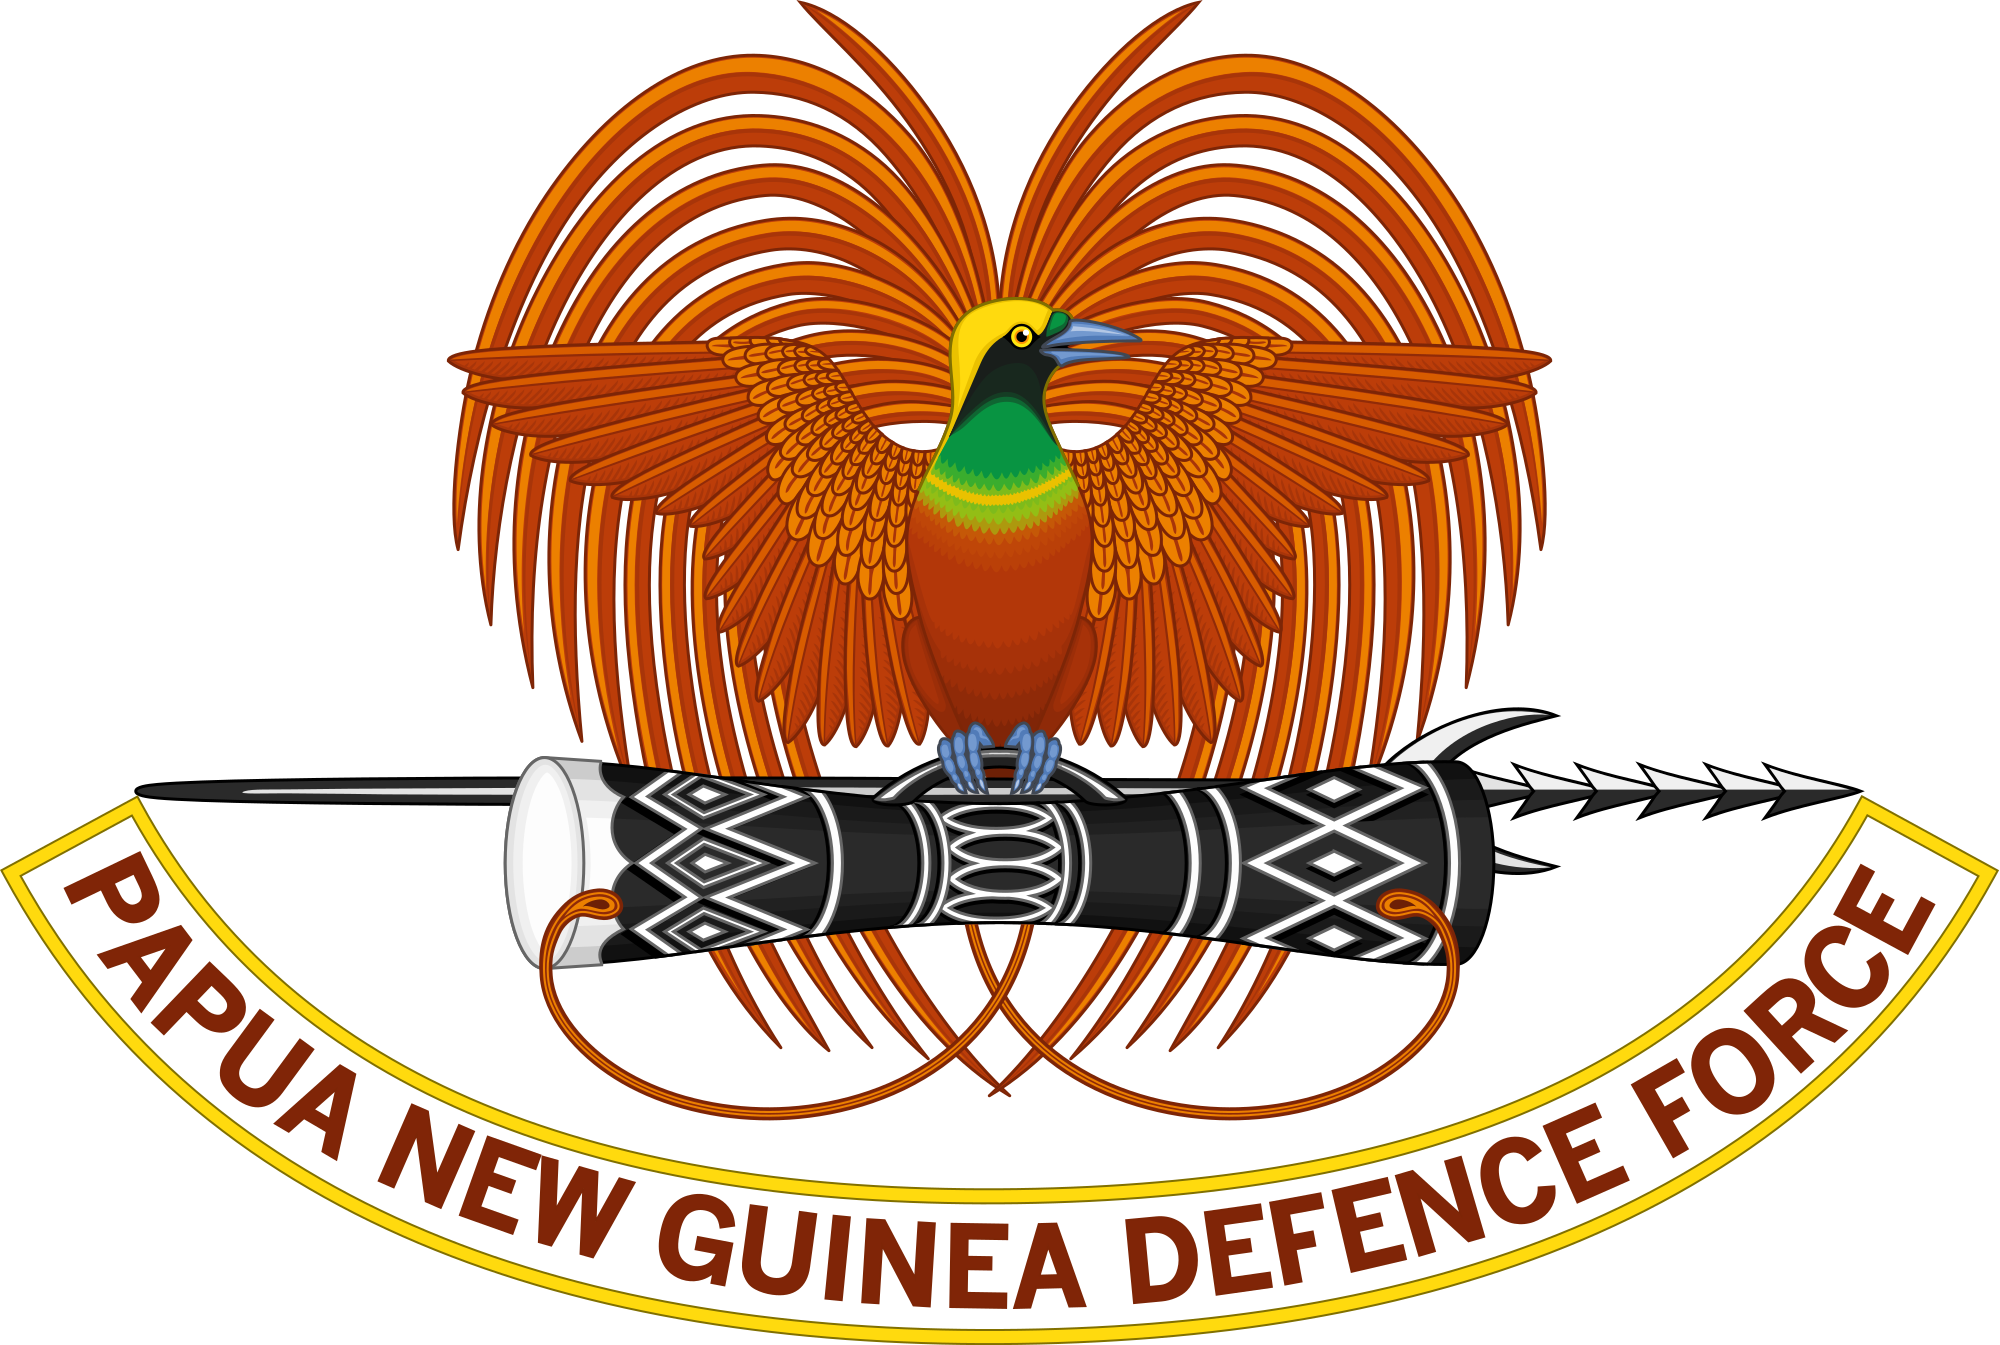 Government clipart military spending. Papua new guinea defence